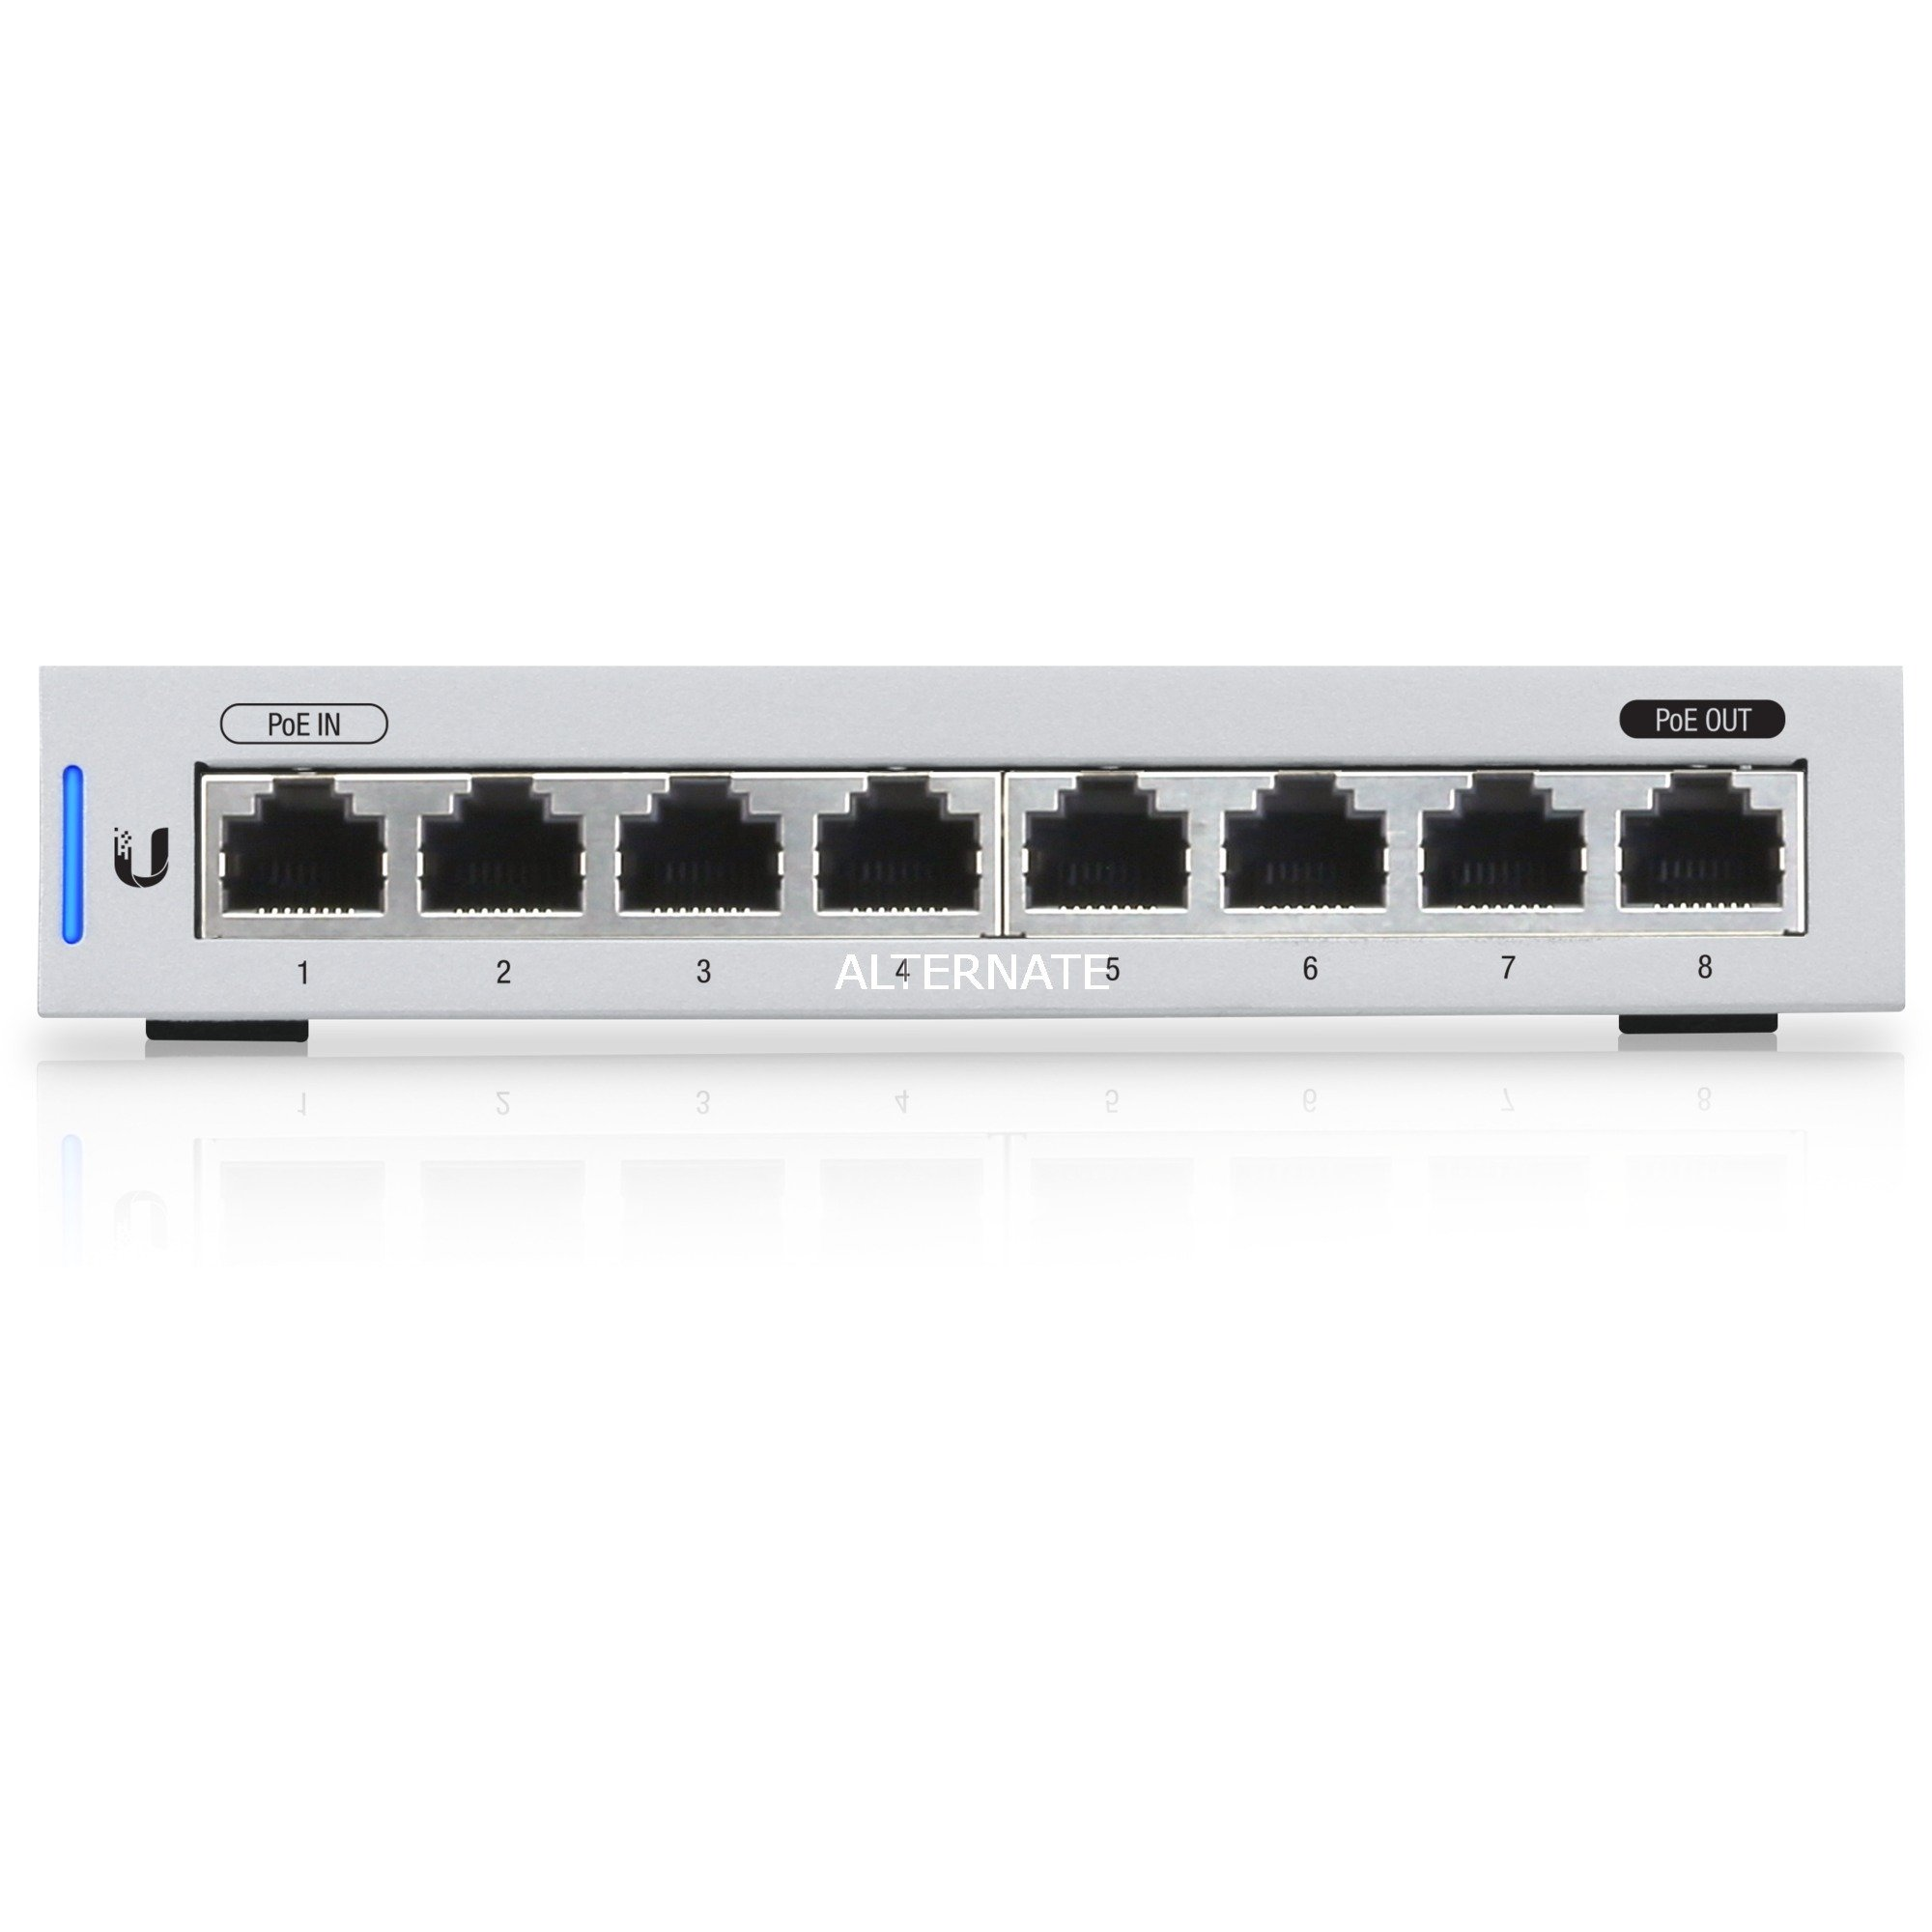 UniFi Switch 8 Commutateur de réseau géré Gigabit Ethernet (10/100/1000) Connexion Ethernet, supportant l'alimentation via ce port (PoE) Gris